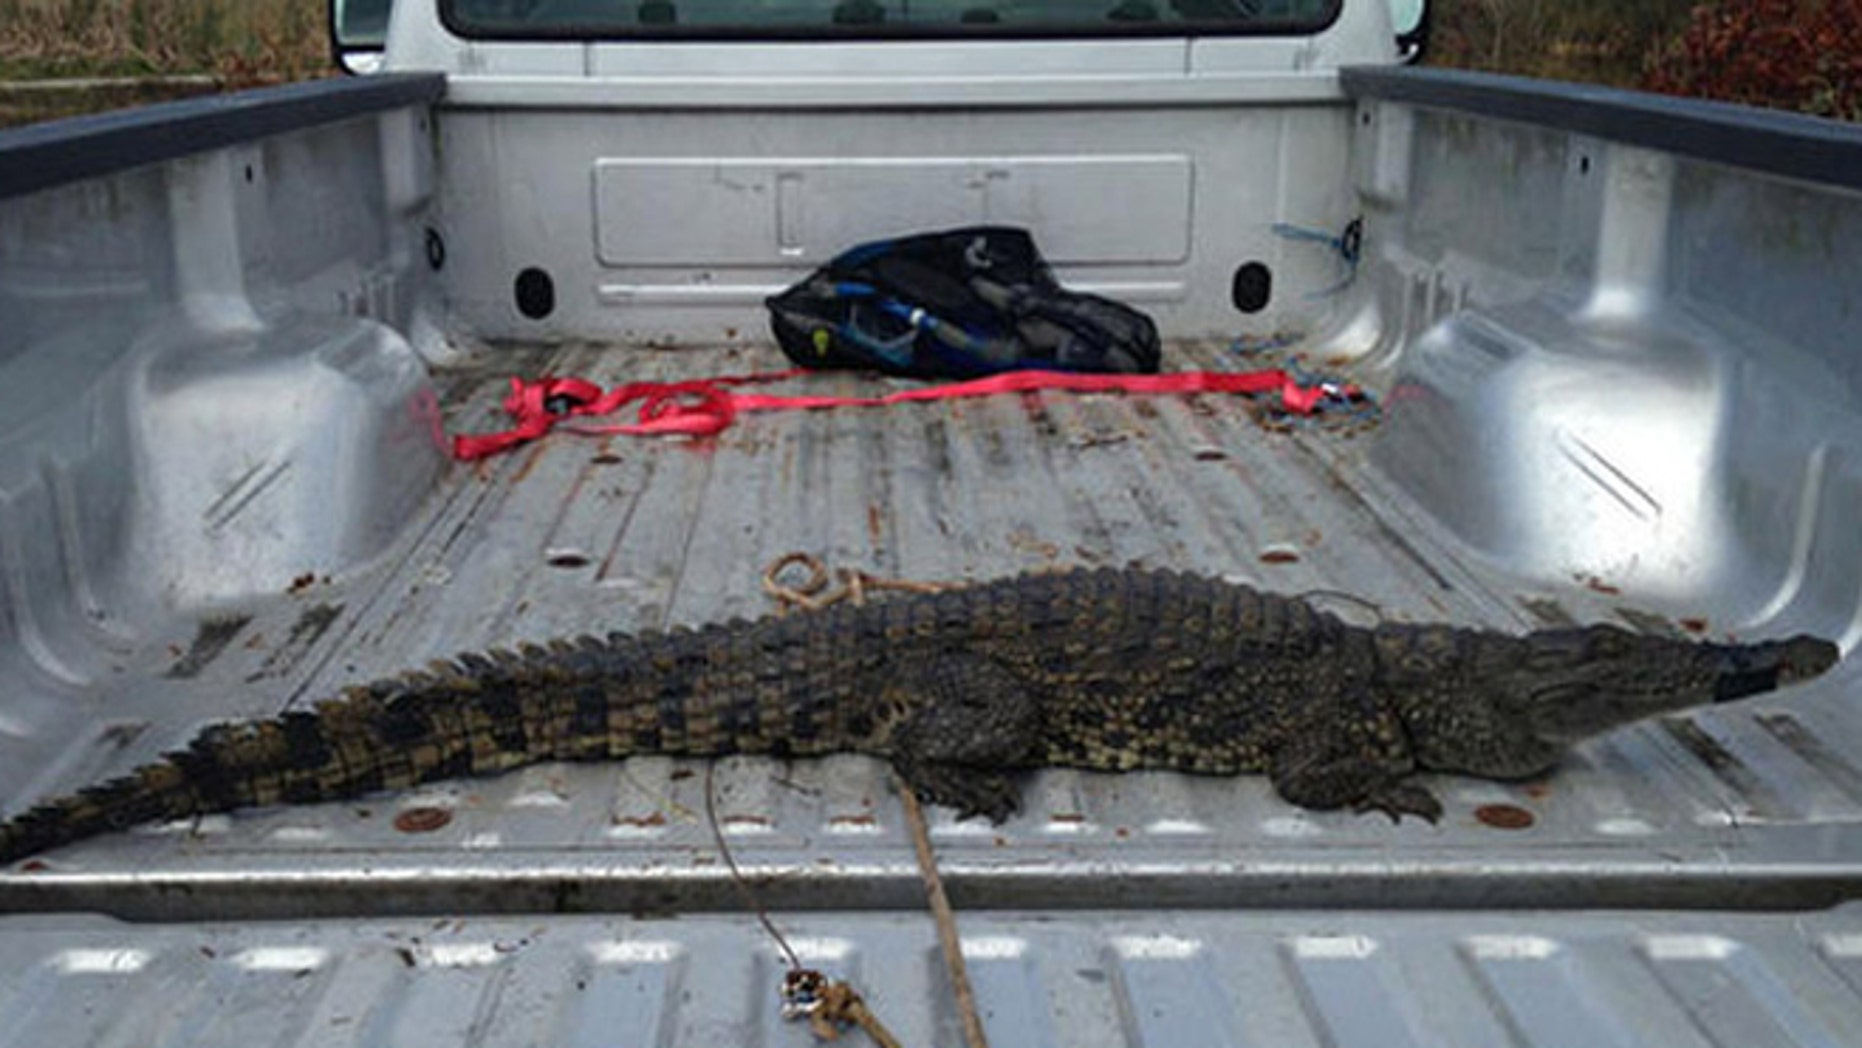 The crocodile was taken to the Everglades Alligator farm in Homestead, where it will remain while officials determine its fate.